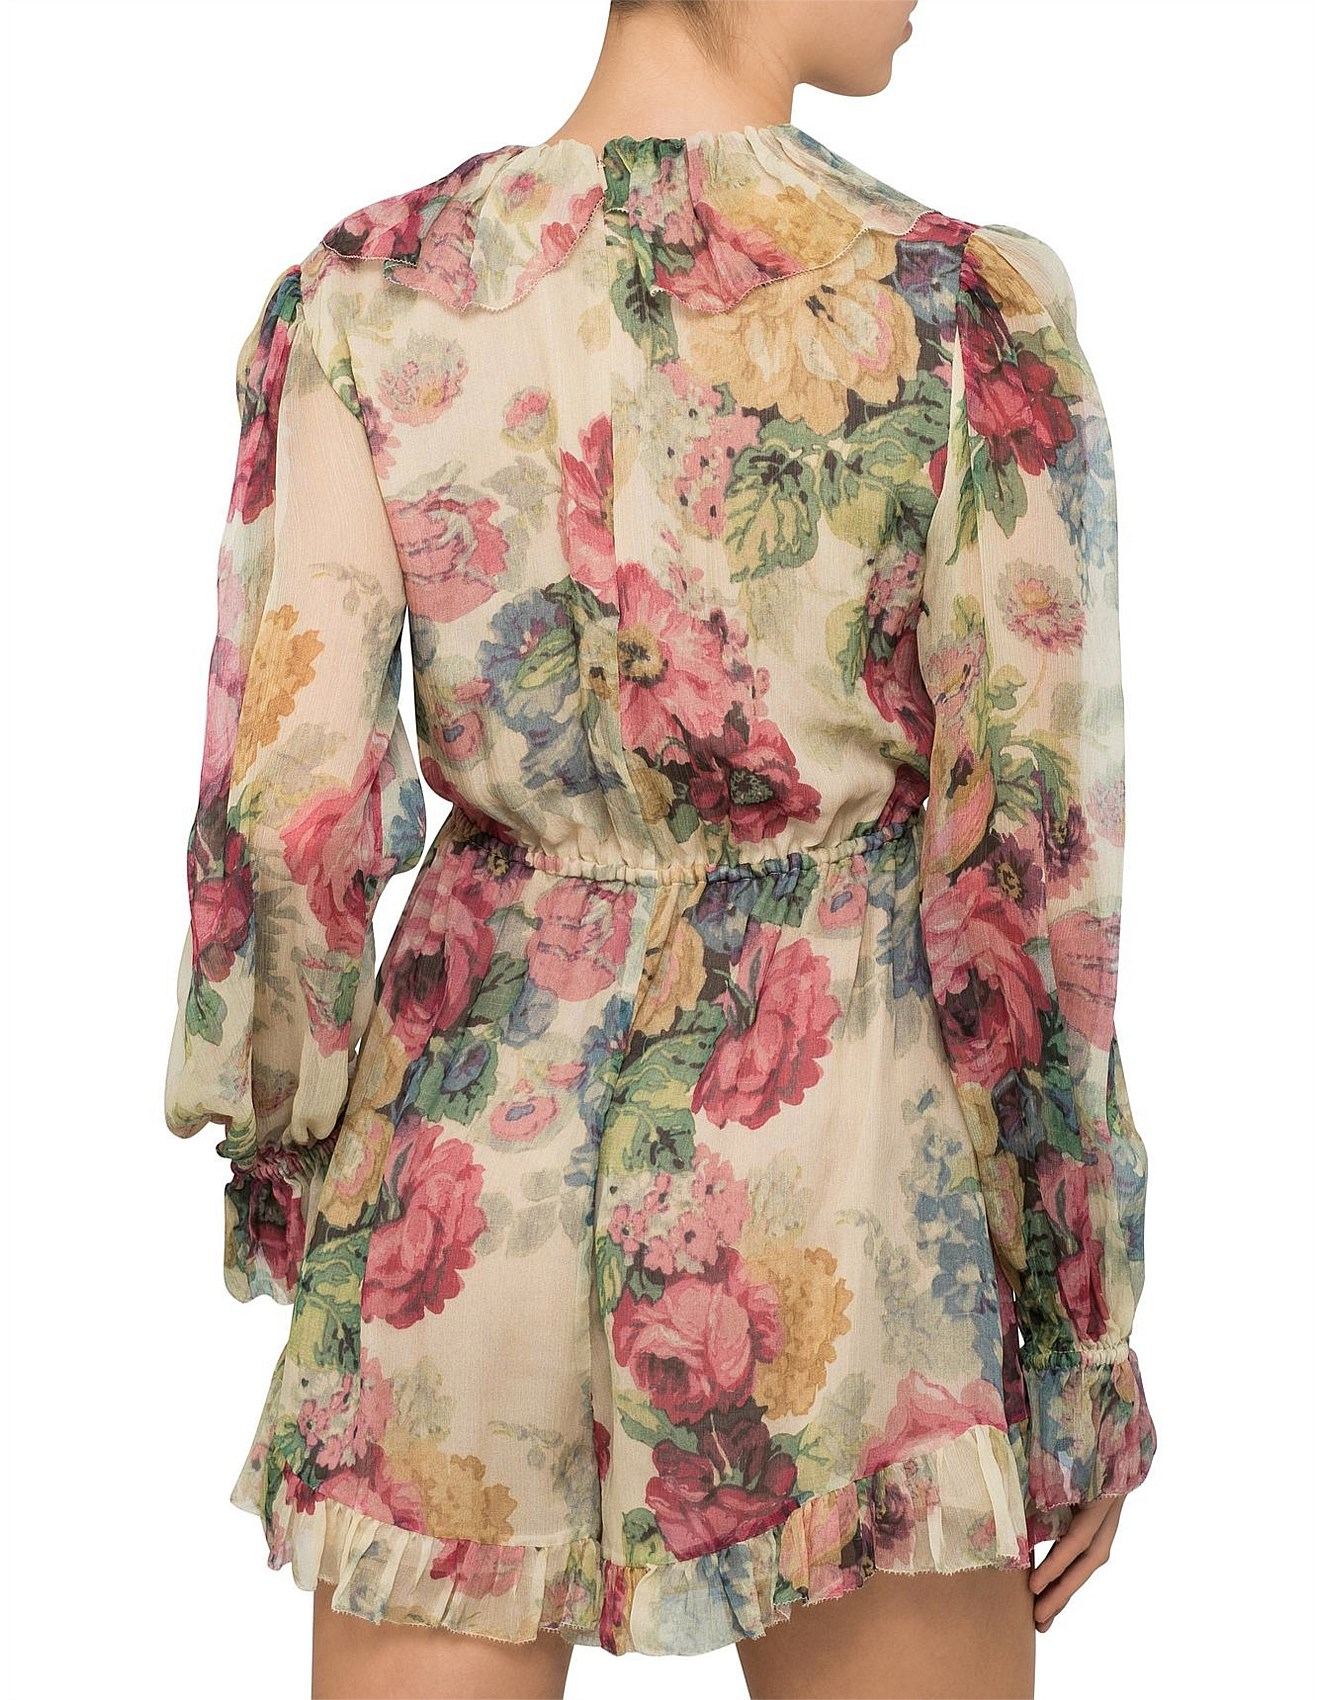 1183492428 Melody Floating Playsuit Special Offer. 1